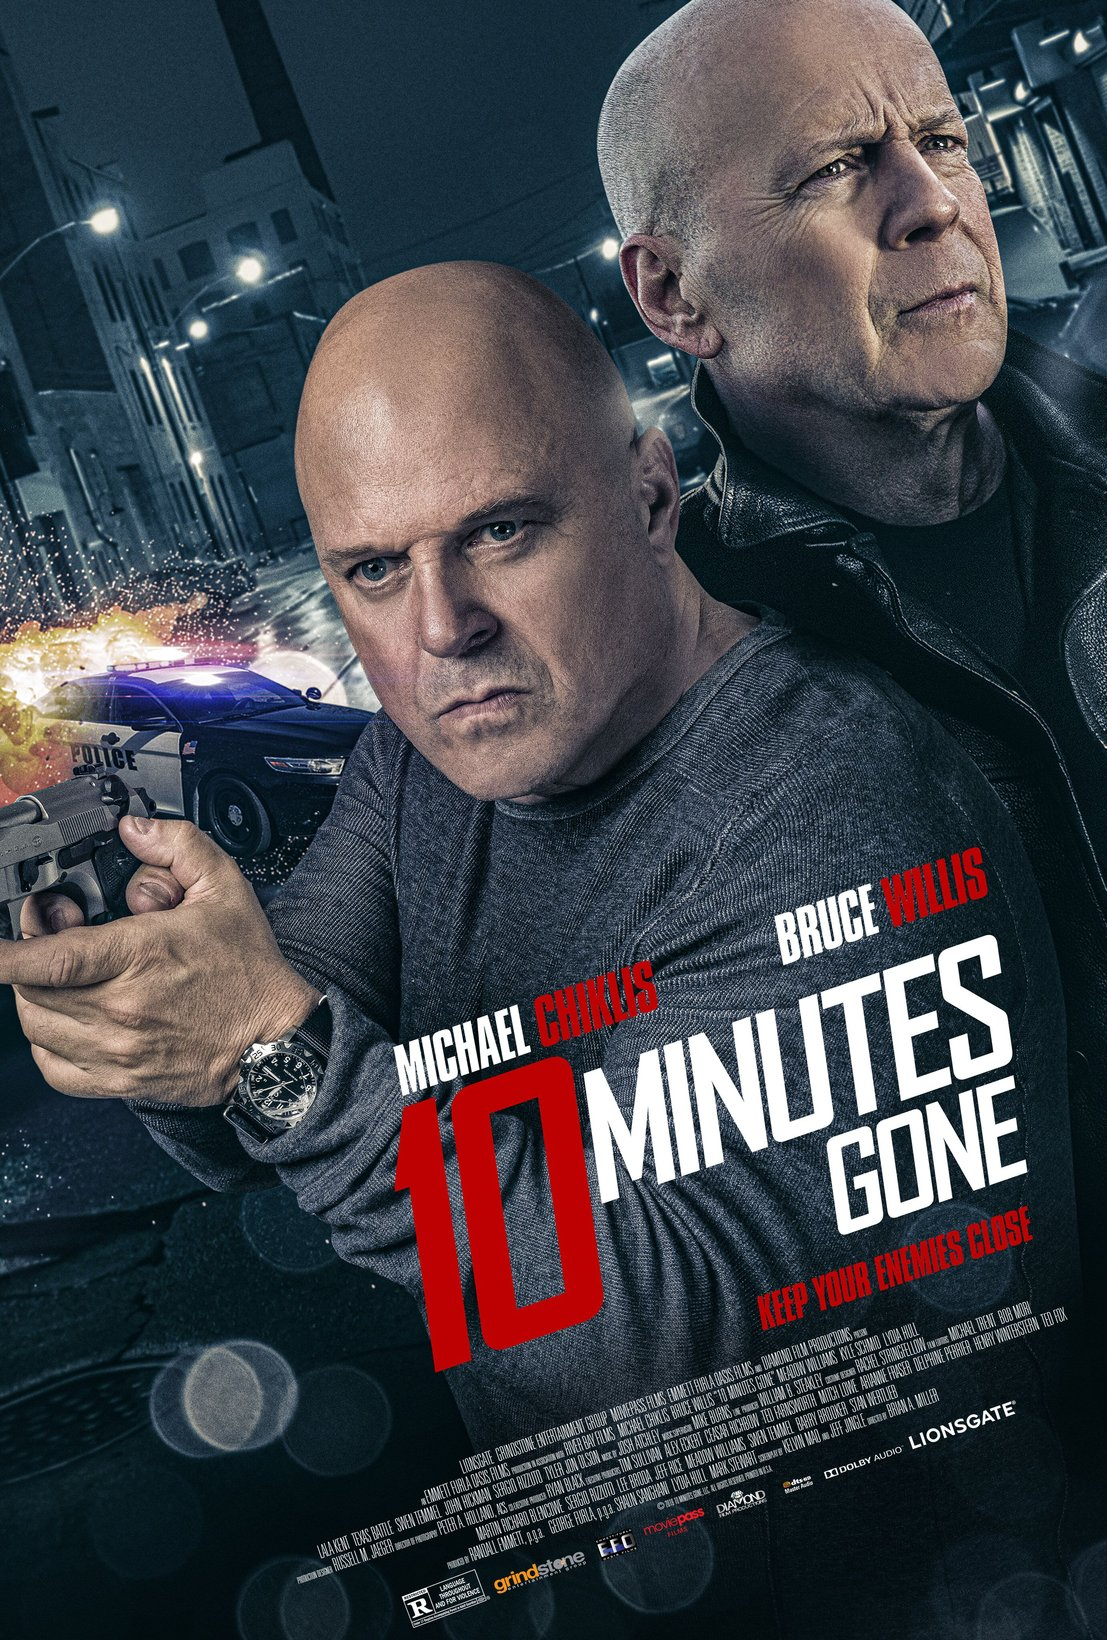 10-minutes-gone-key-art.jpg